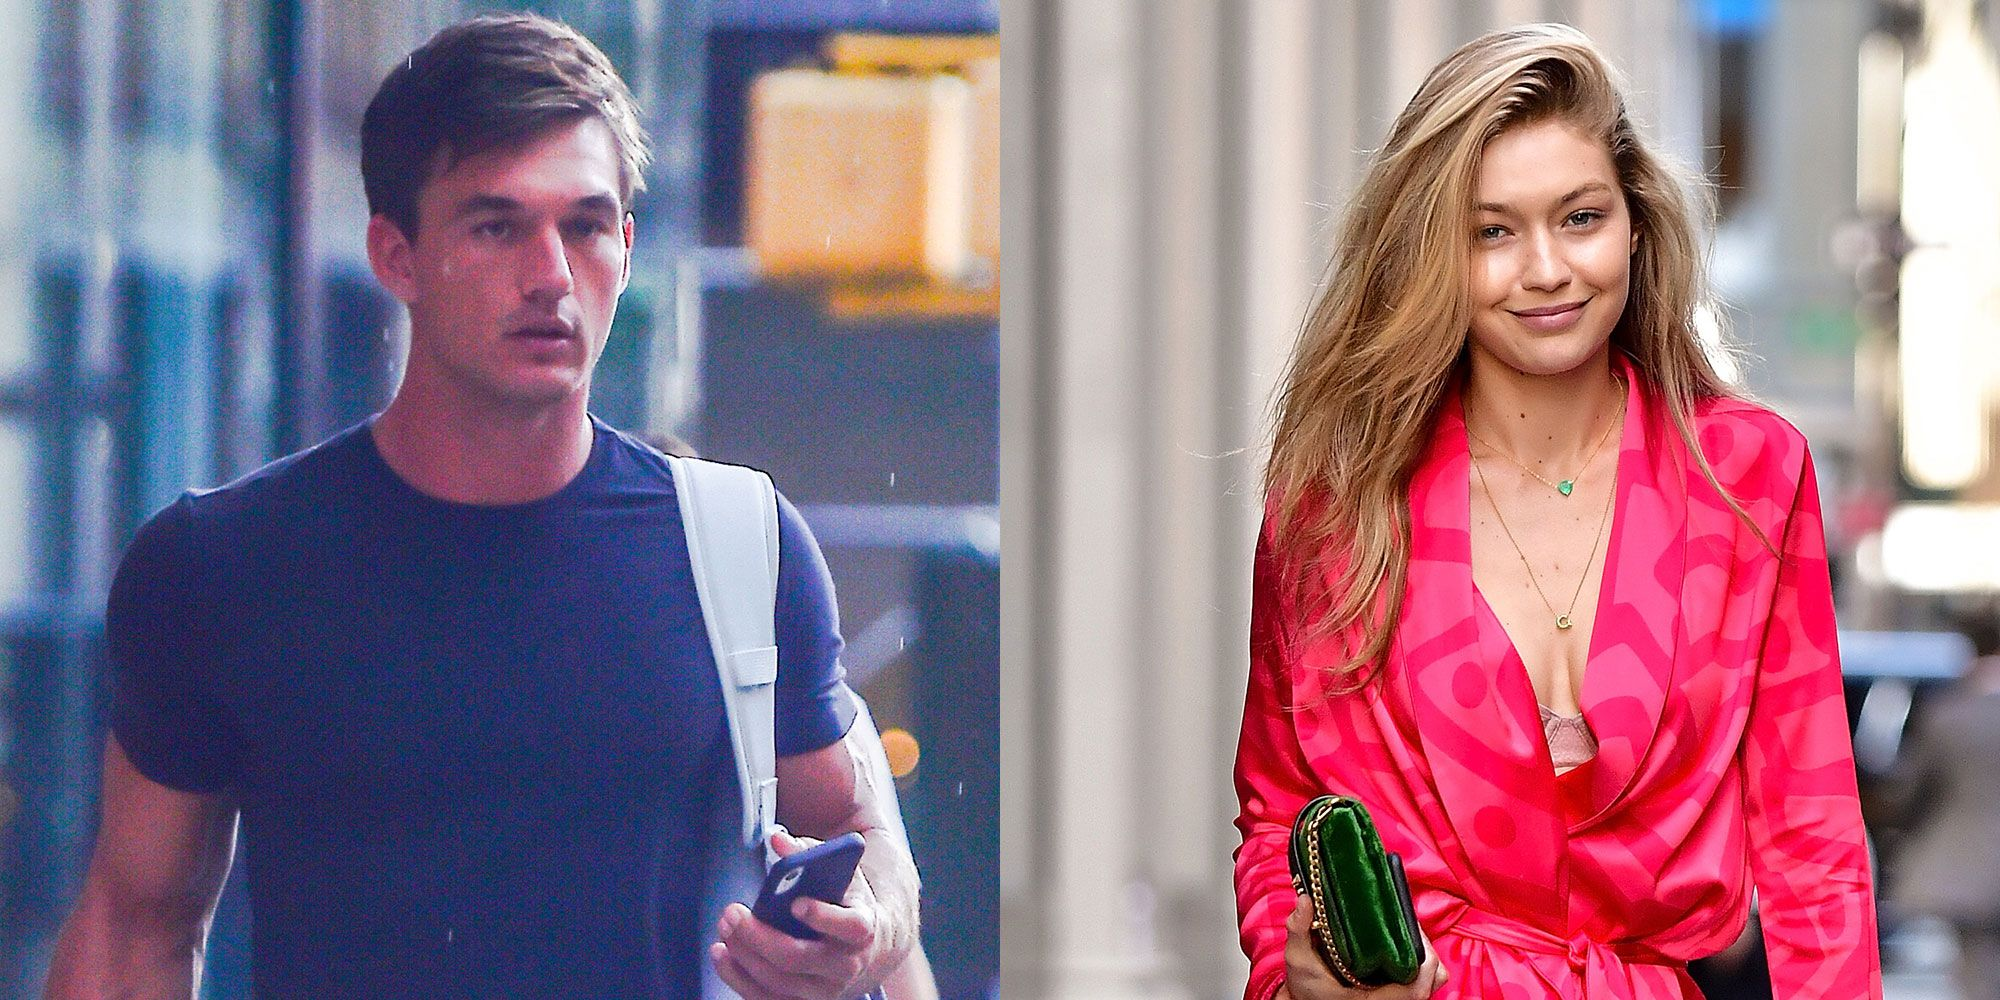 Tyler Cameron Was Seen Leaving Gigi Hadid's Apartment the Morning After Their Dinner With Serena Williams